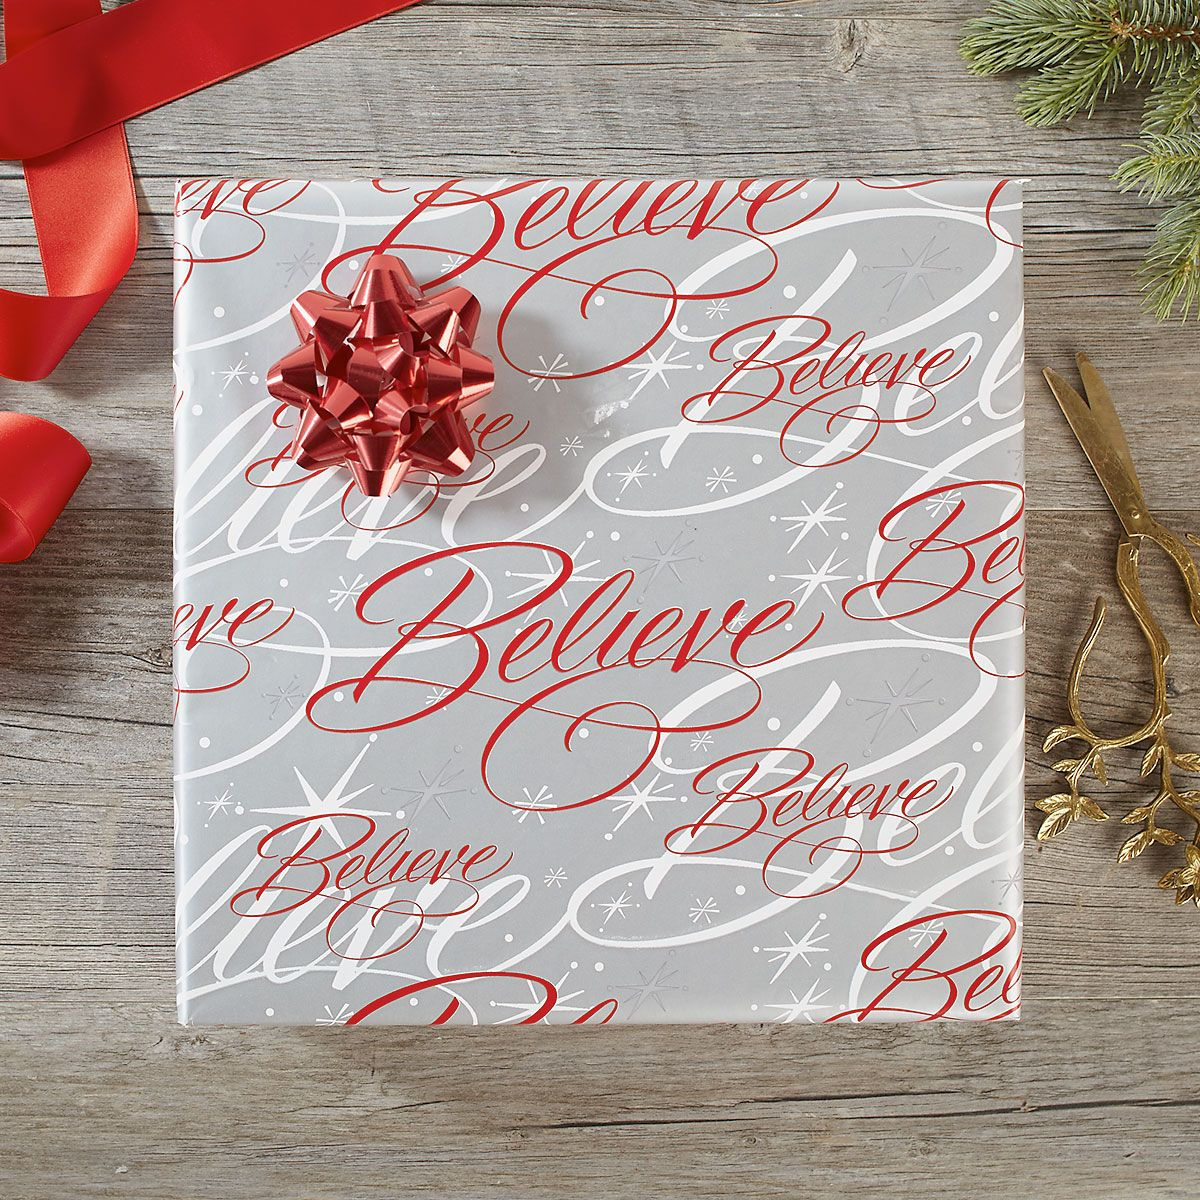 Believe Silver Jumbo Rolled Gift Wrap and Labels